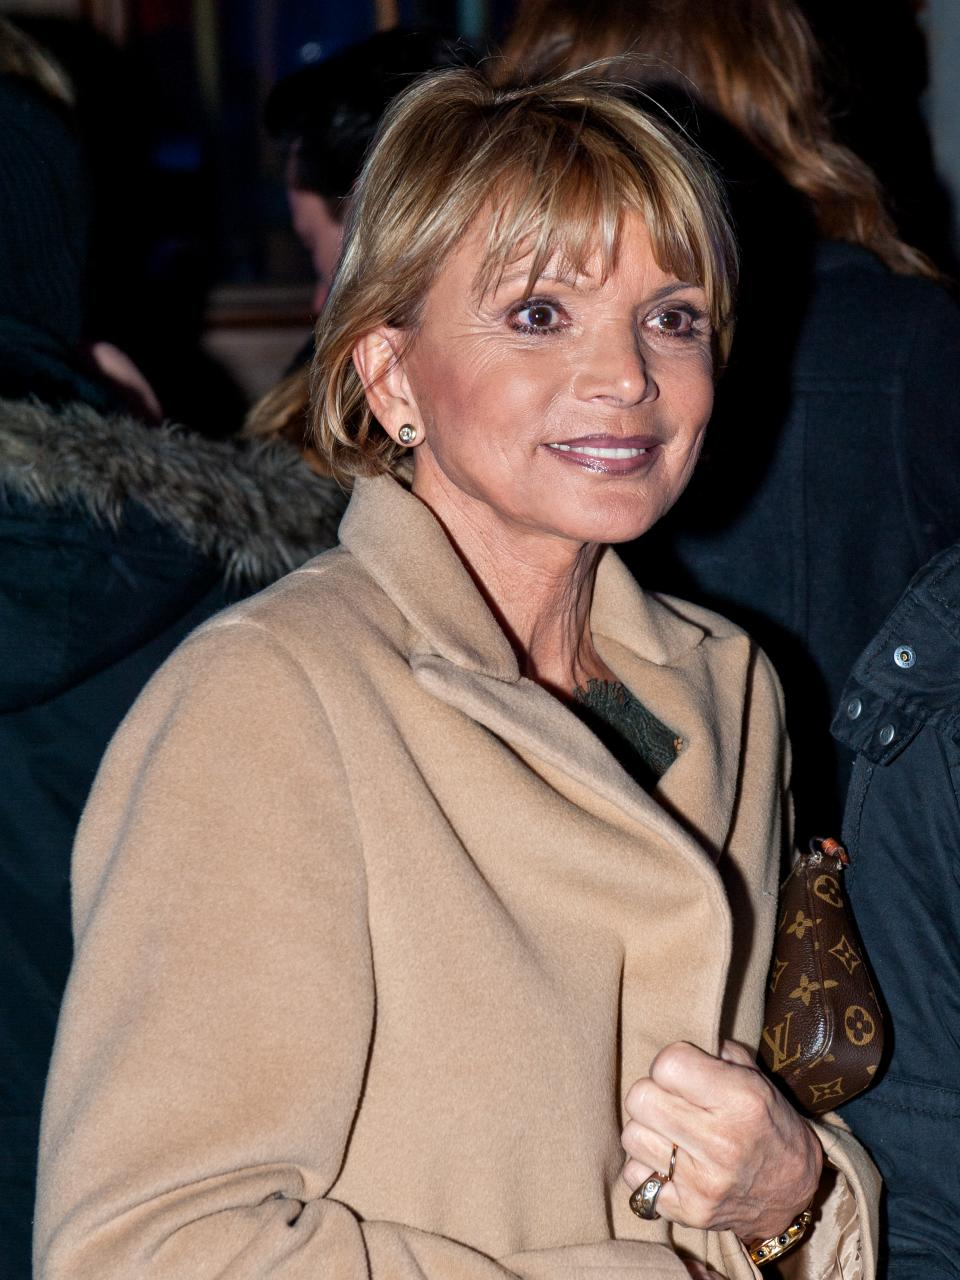 https://upload.wikimedia.org/wikipedia/commons/1/1a/Uschi_Glas_%28Berlinale_2012%29.jpg